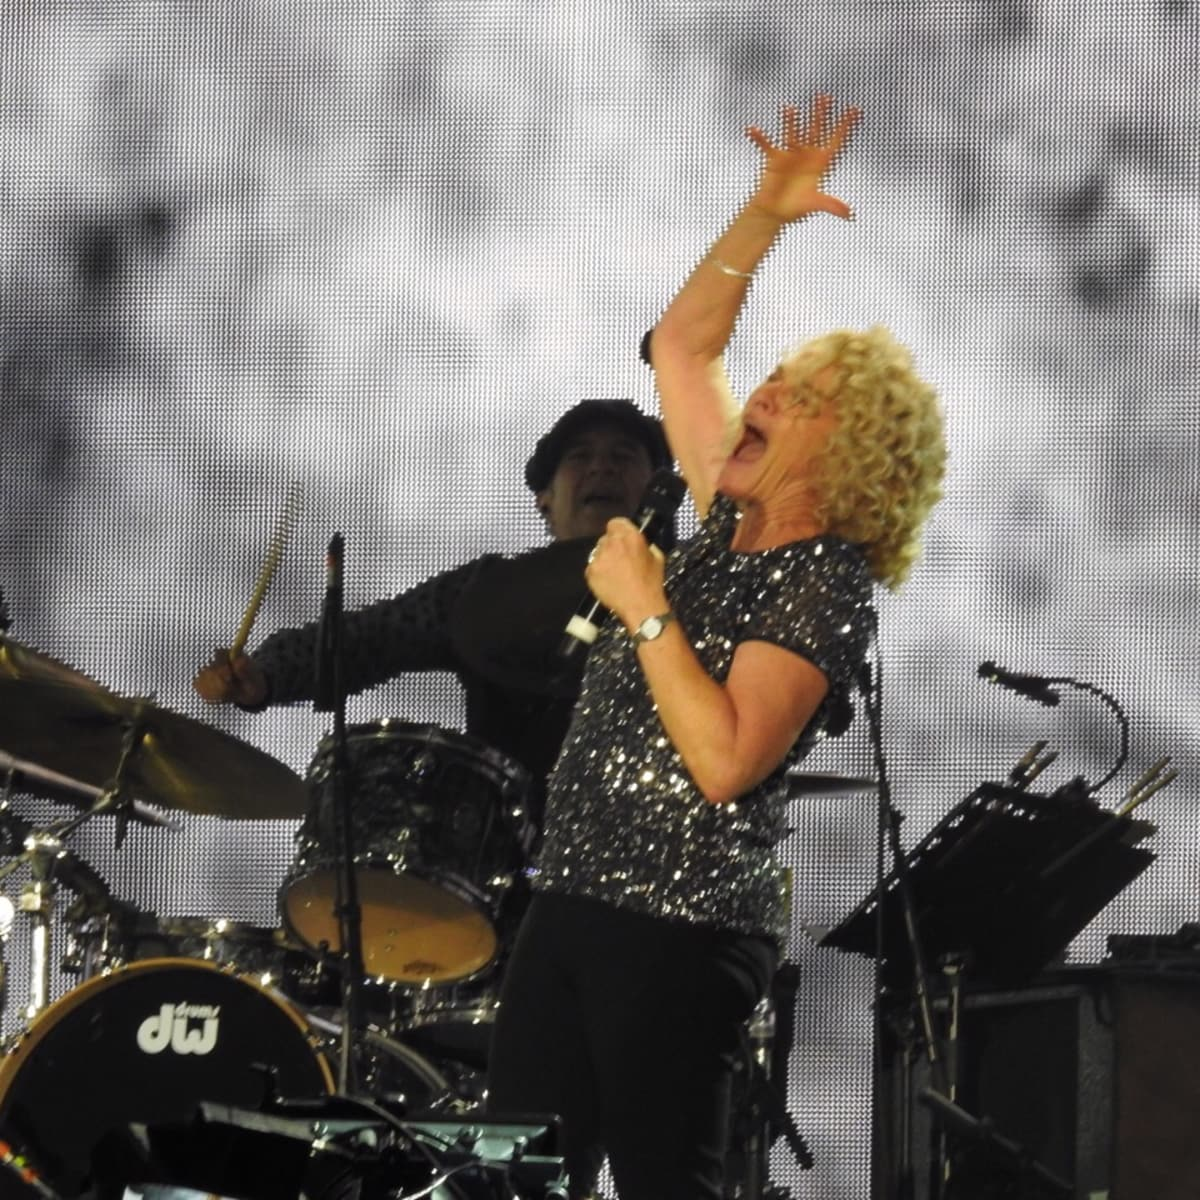 Carole King at London concert